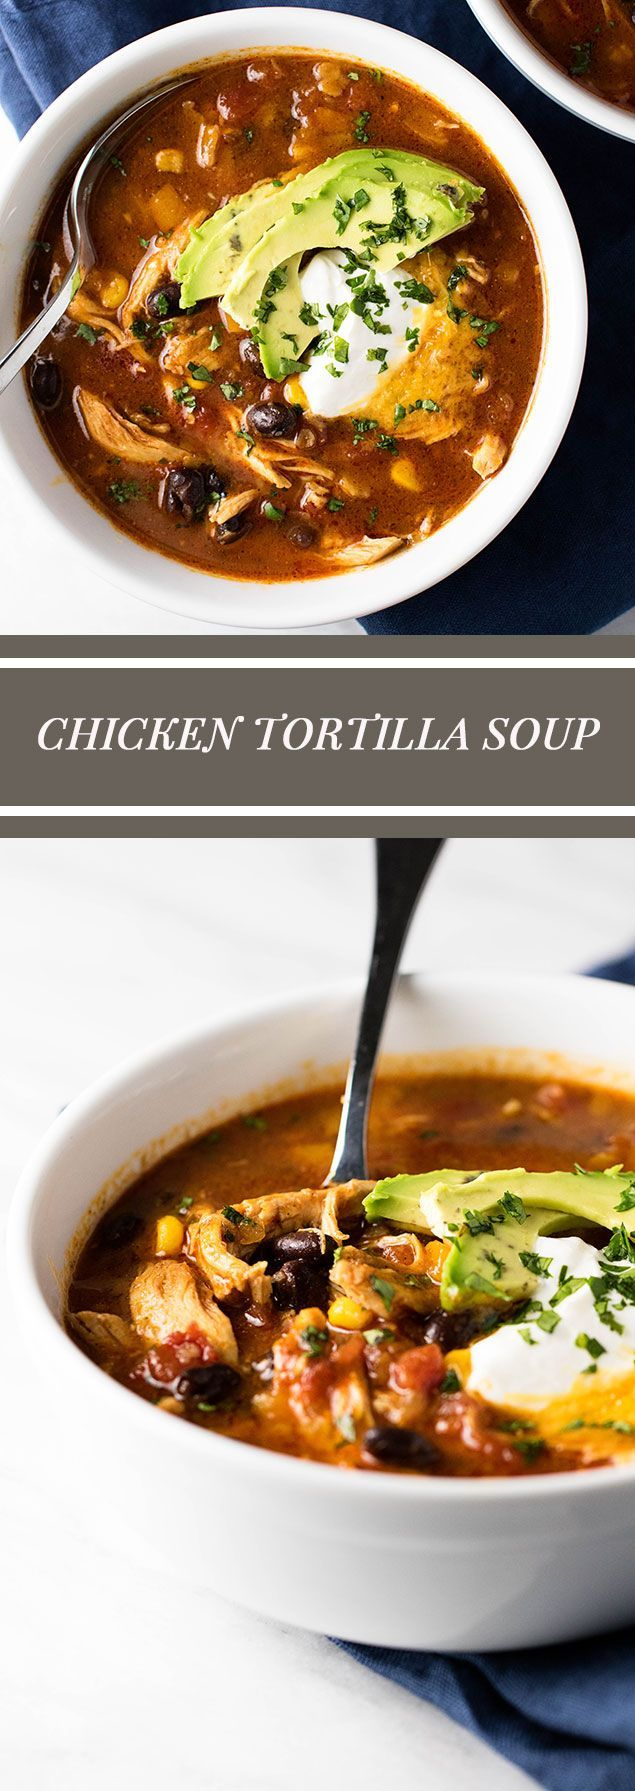 Warm and cozy chicken tortilla soup with corn and black beans | girlgonegourmet.com via @april7116